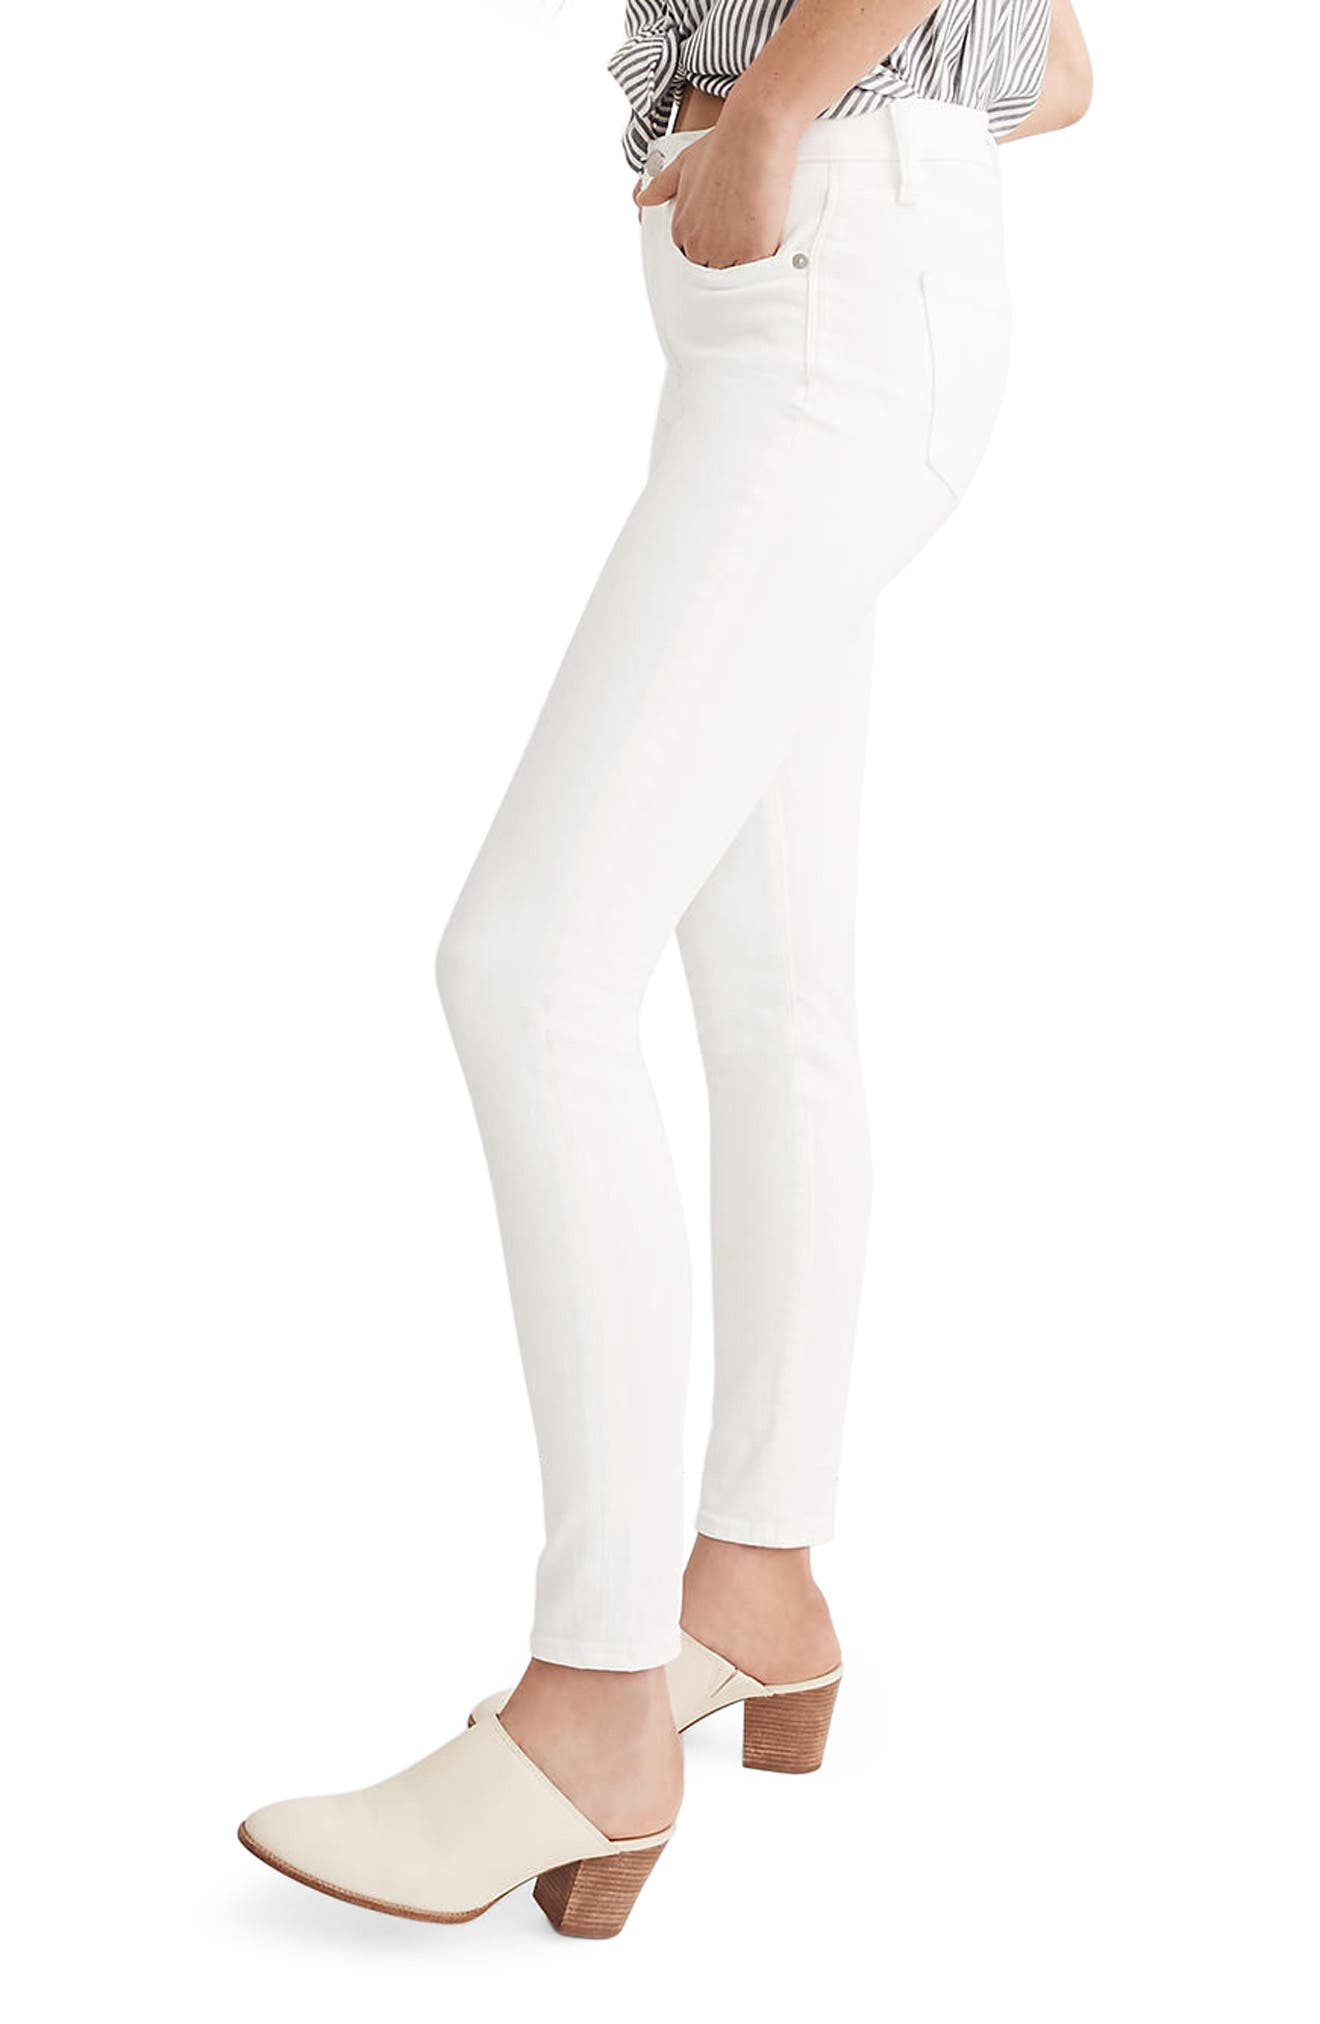 MADEWELL, 9-Inch High Waist Skinny Jeans, Alternate thumbnail 4, color, PURE WHITE